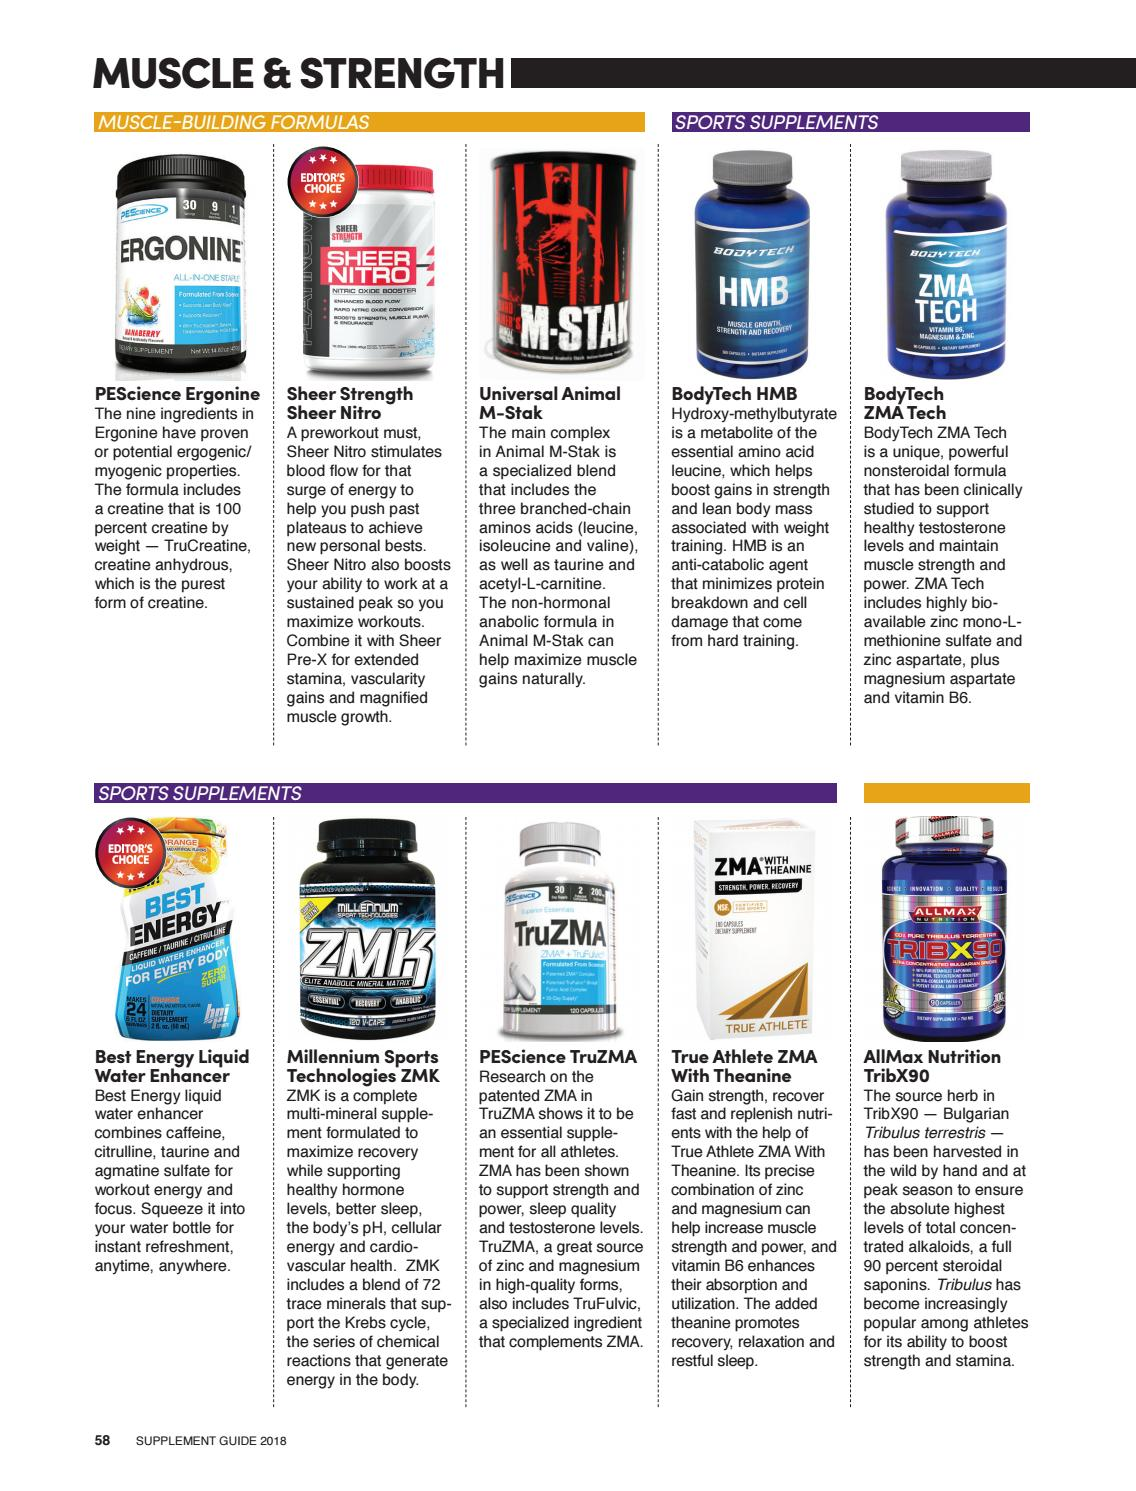 Supplement Guide 2018 by Muscle & Performance - issuu